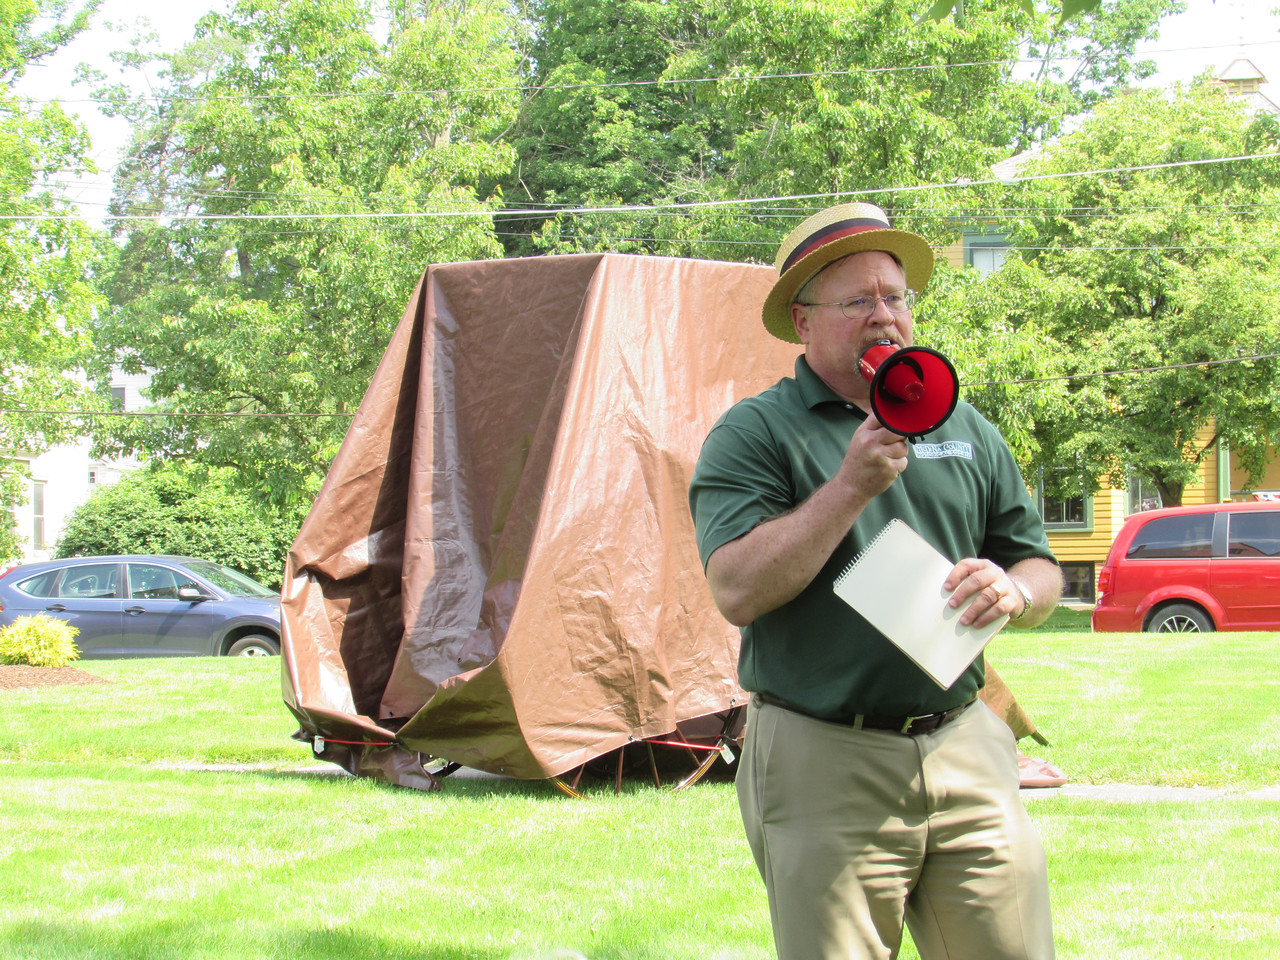 LYDIA MAINZER / SPECIAL TO THE GAZETTE Medina County Historical Society President Brian Feron tells an audience Saturday about the restoration process that took place on an old carriage.